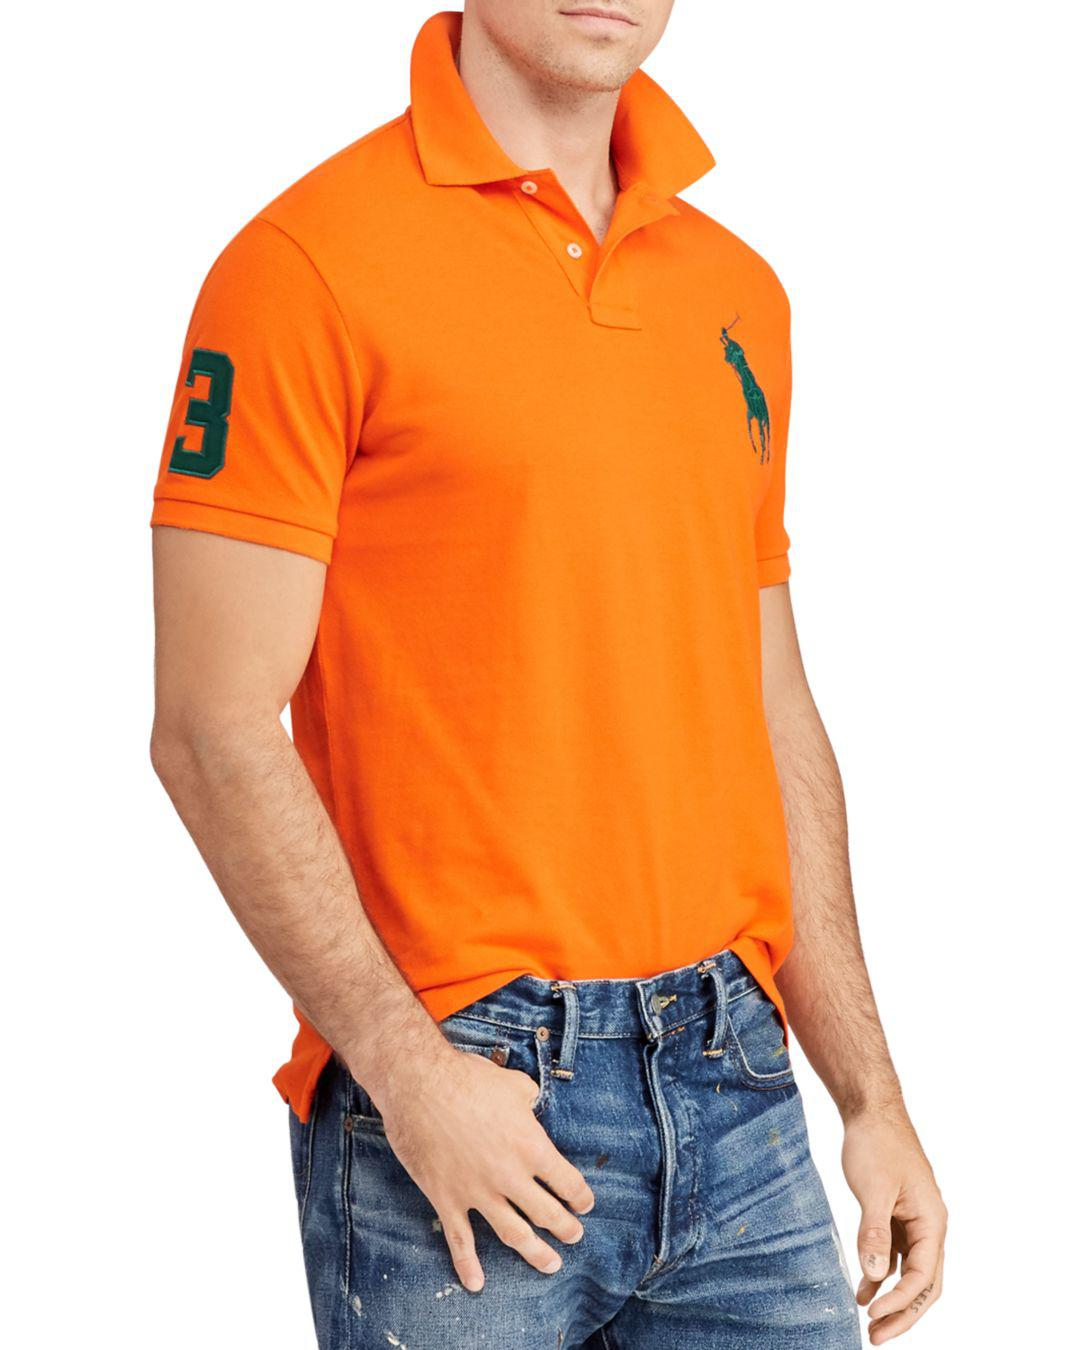 03a16ea512 Lyst - Polo Ralph Lauren Mesh Custom Slim Fit Polo Shirt in Orange ...